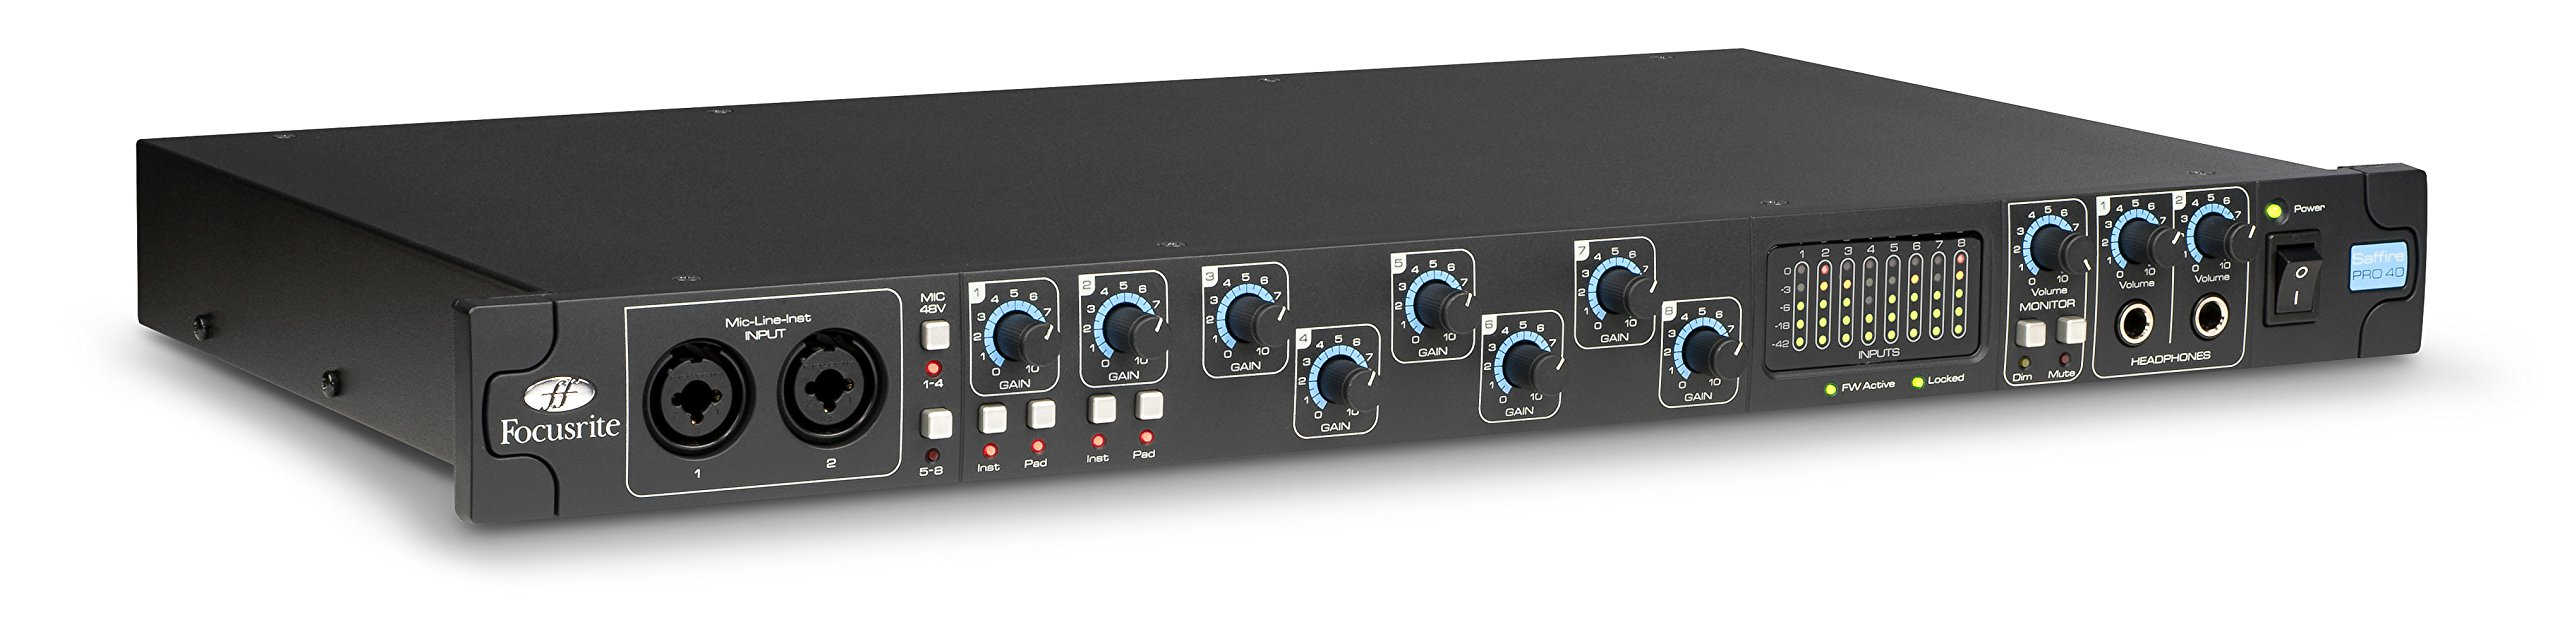 Focusrite Saffire Pro 40 Professional 20 In/20 Out Firewire Audio Interface with Eight Pre-Amps